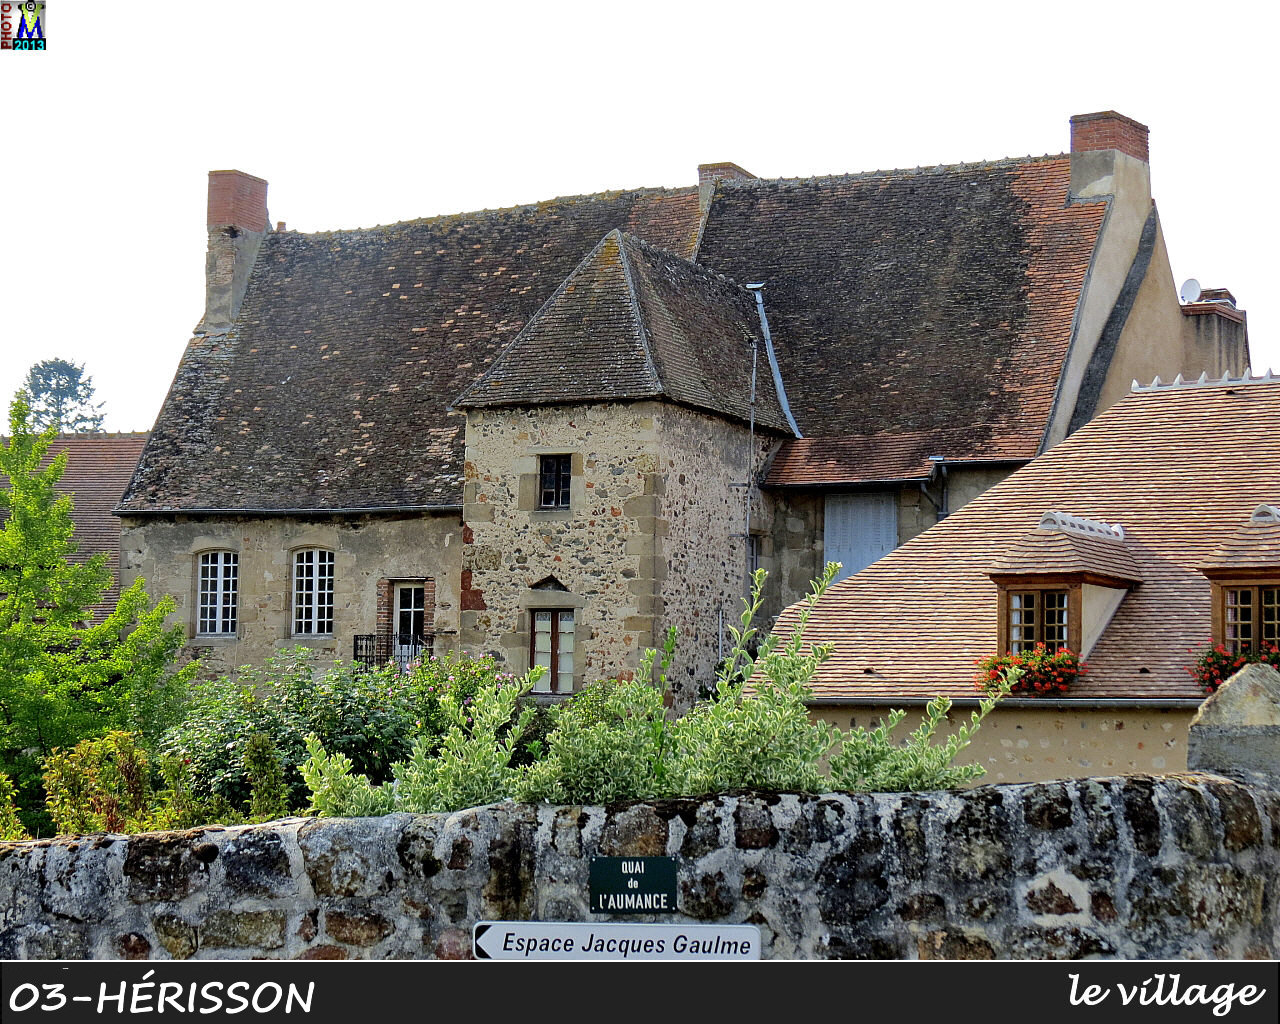 03HERISSON_village_108.jpg